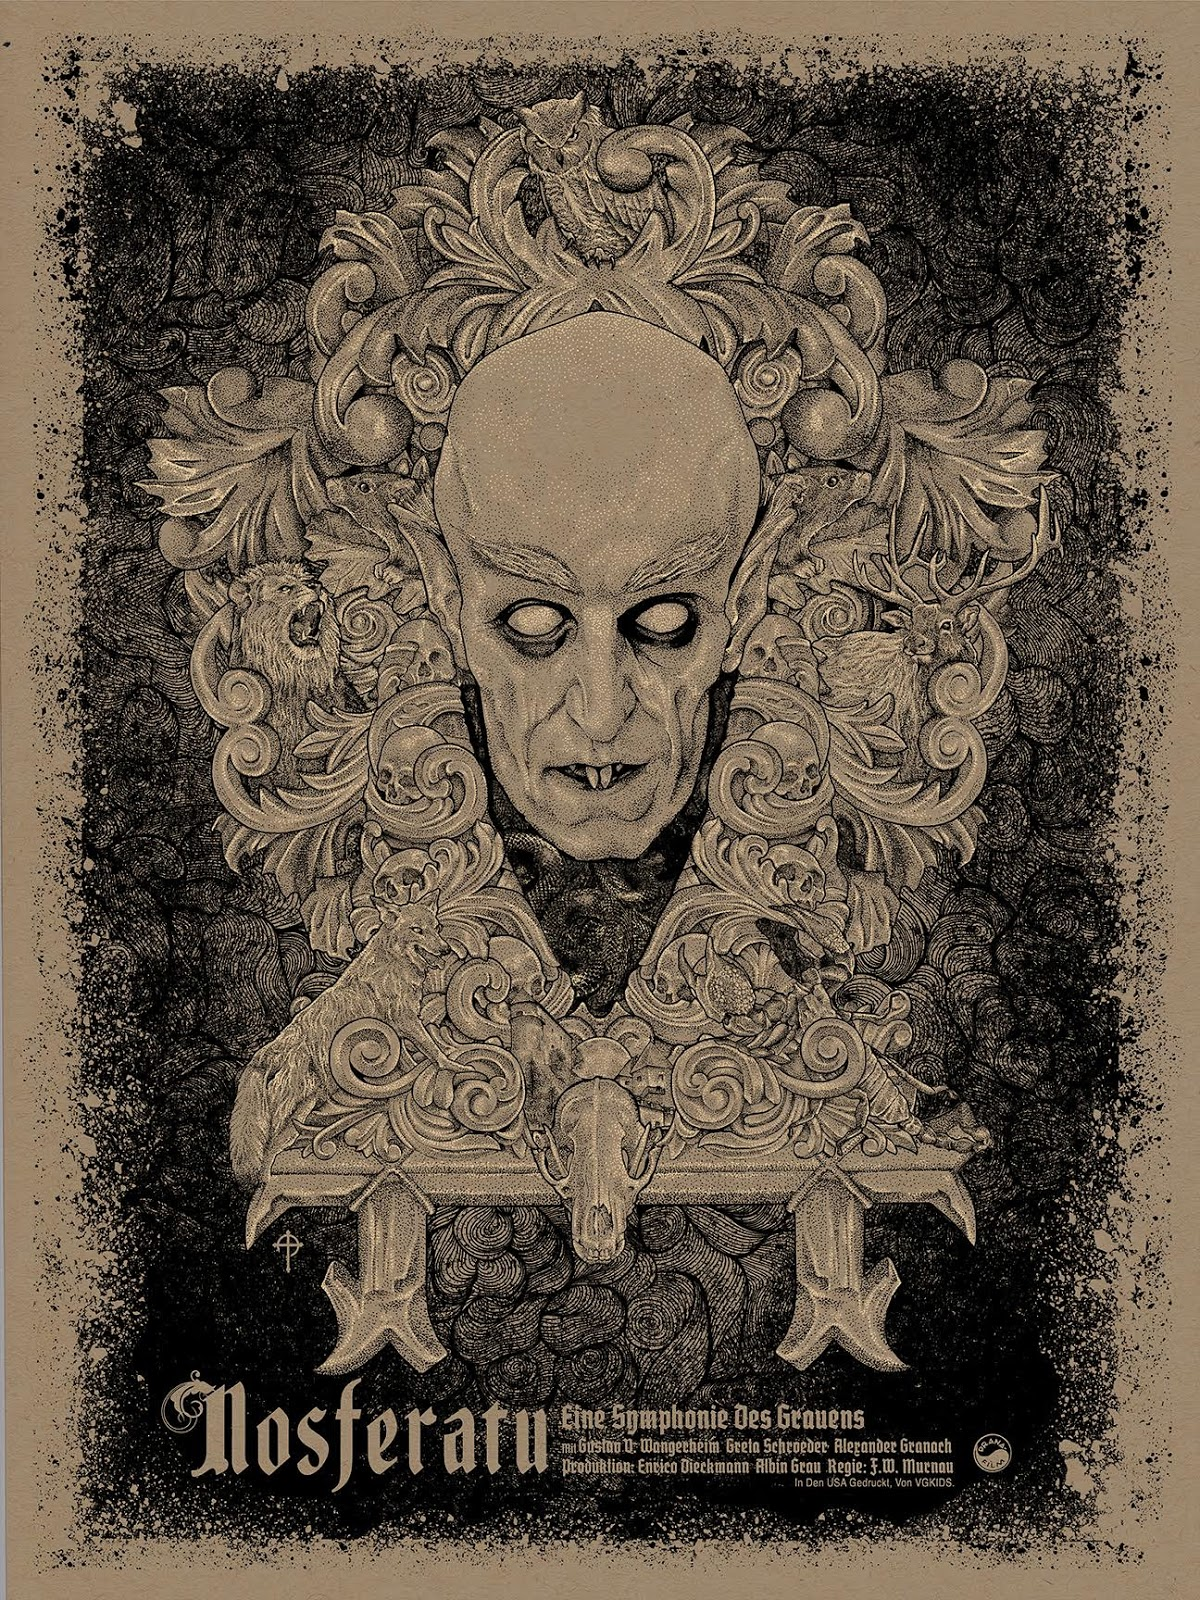 Nosferatu (1922) Dawn Edition poster by Timothy Pittides, 2015